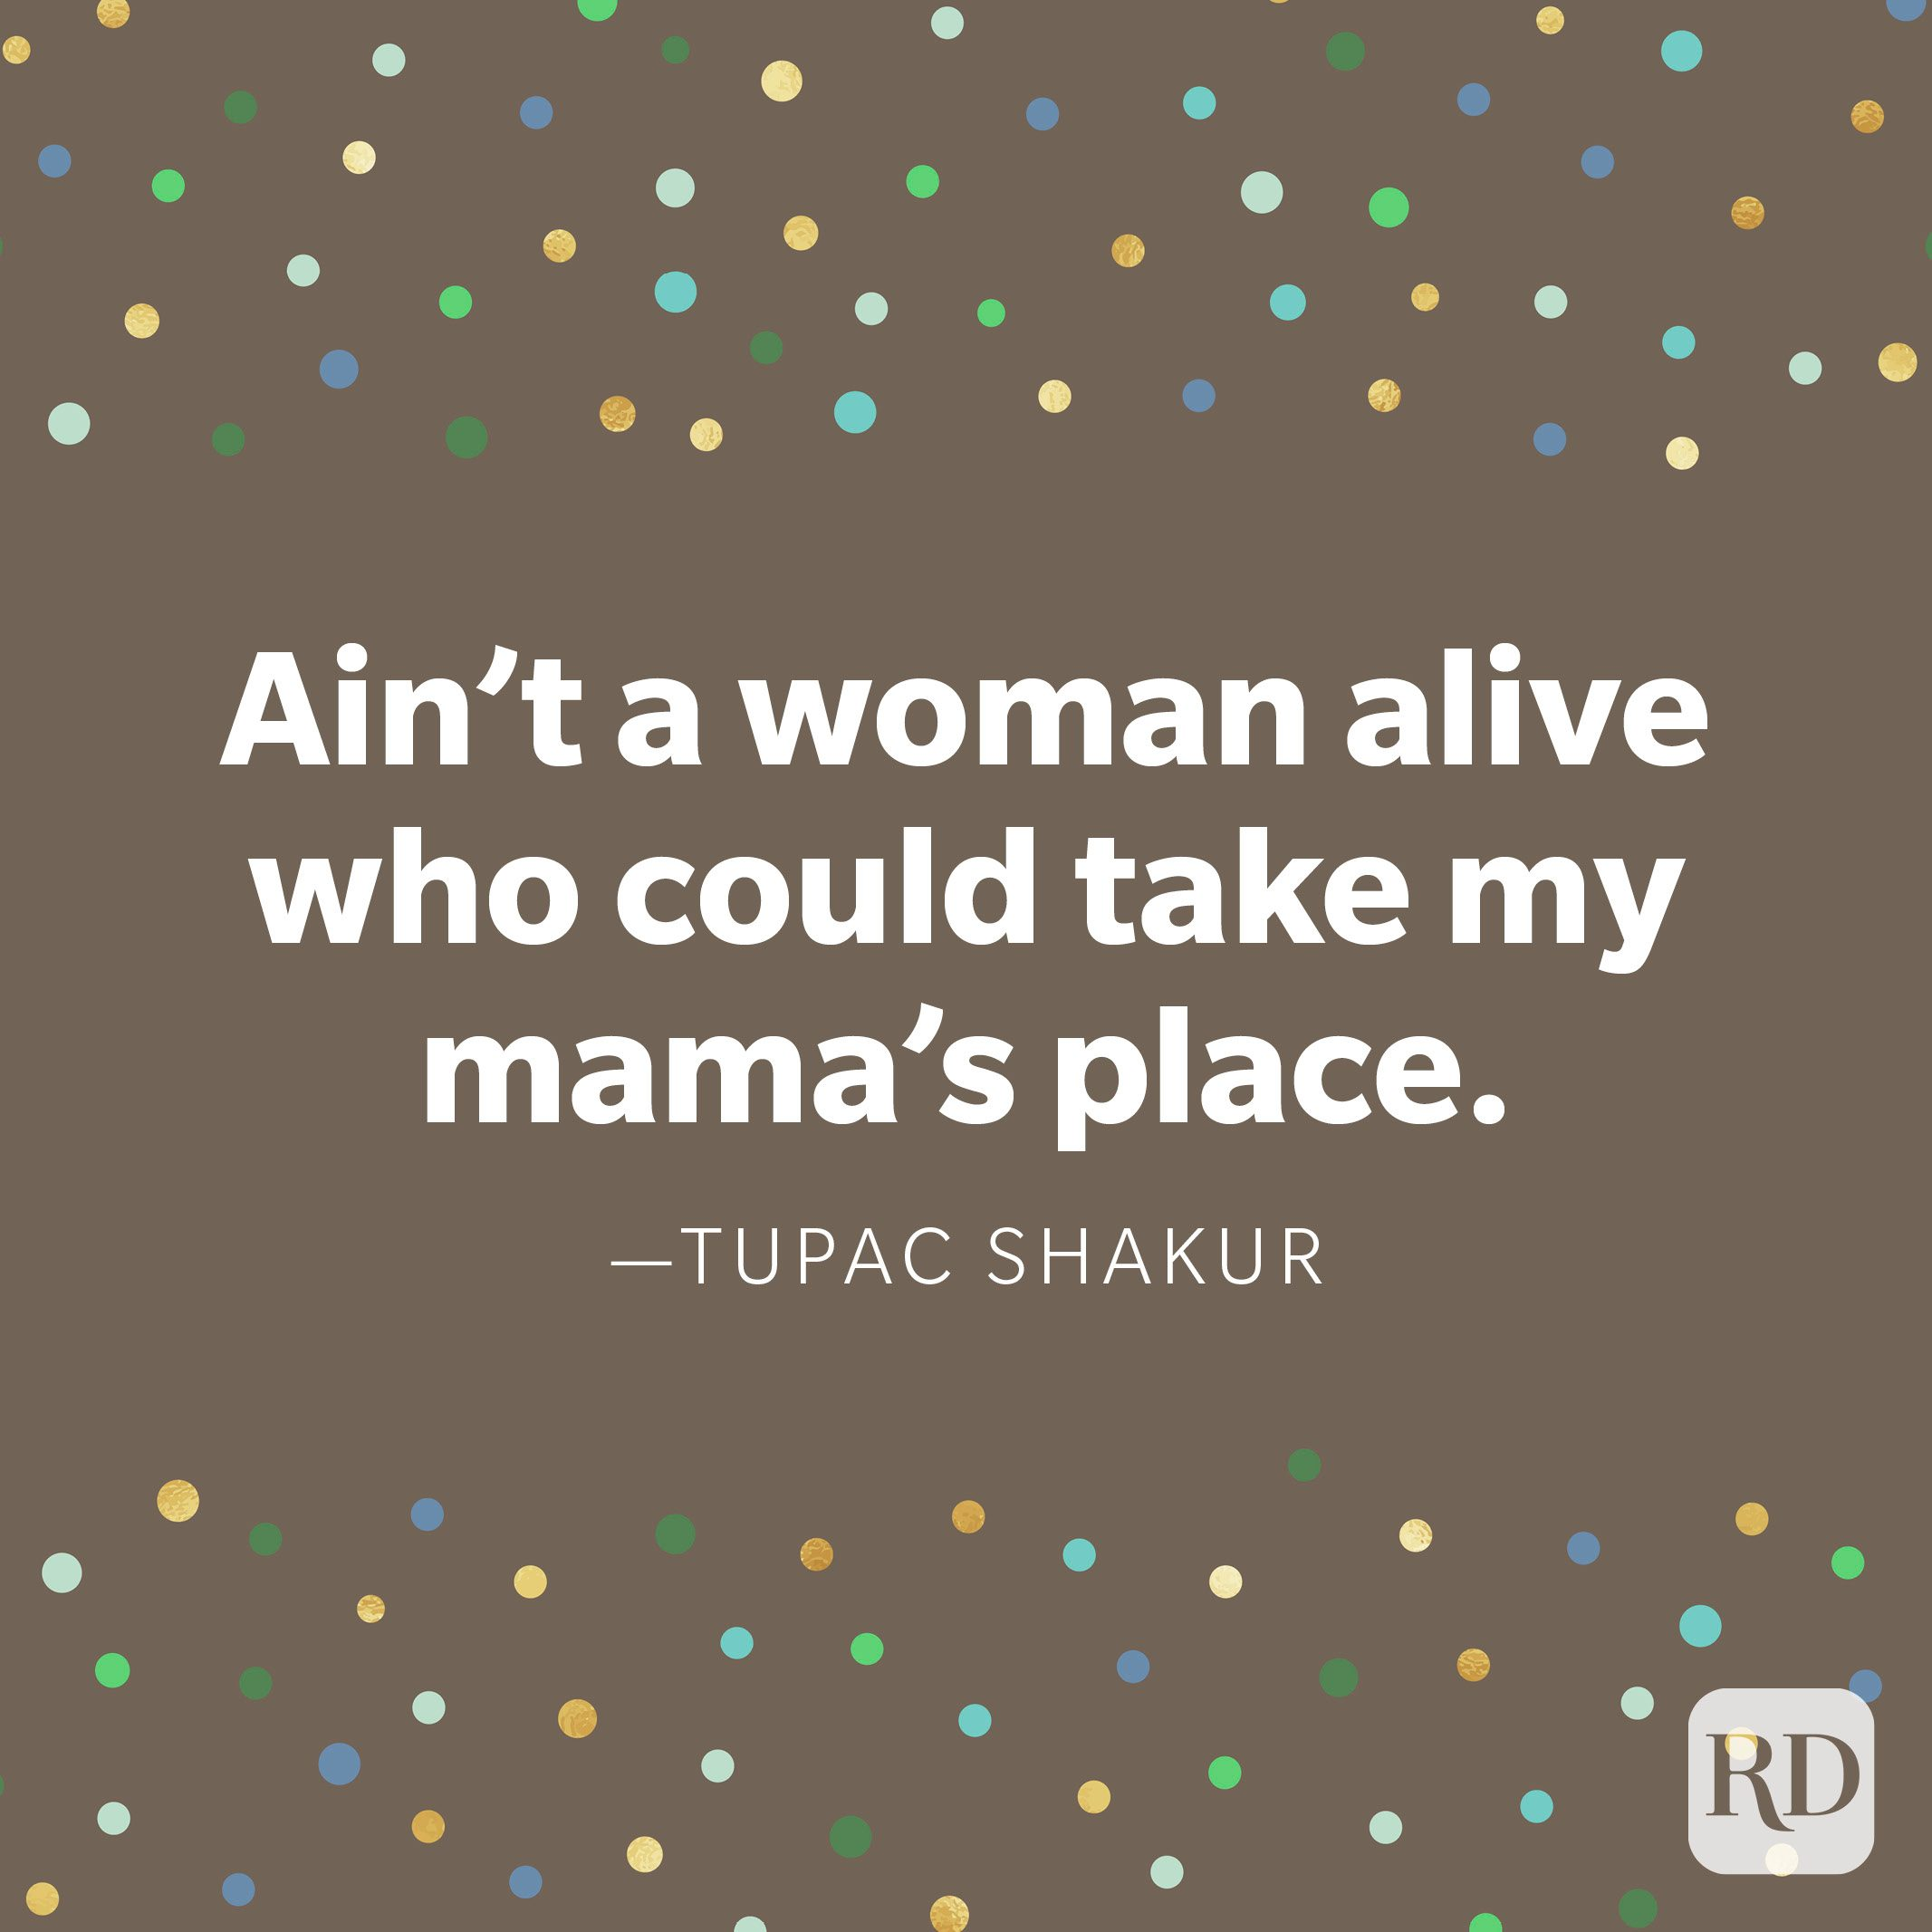 """Ain't a woman alive who could take my mama's place."" —Tupac Shakur"